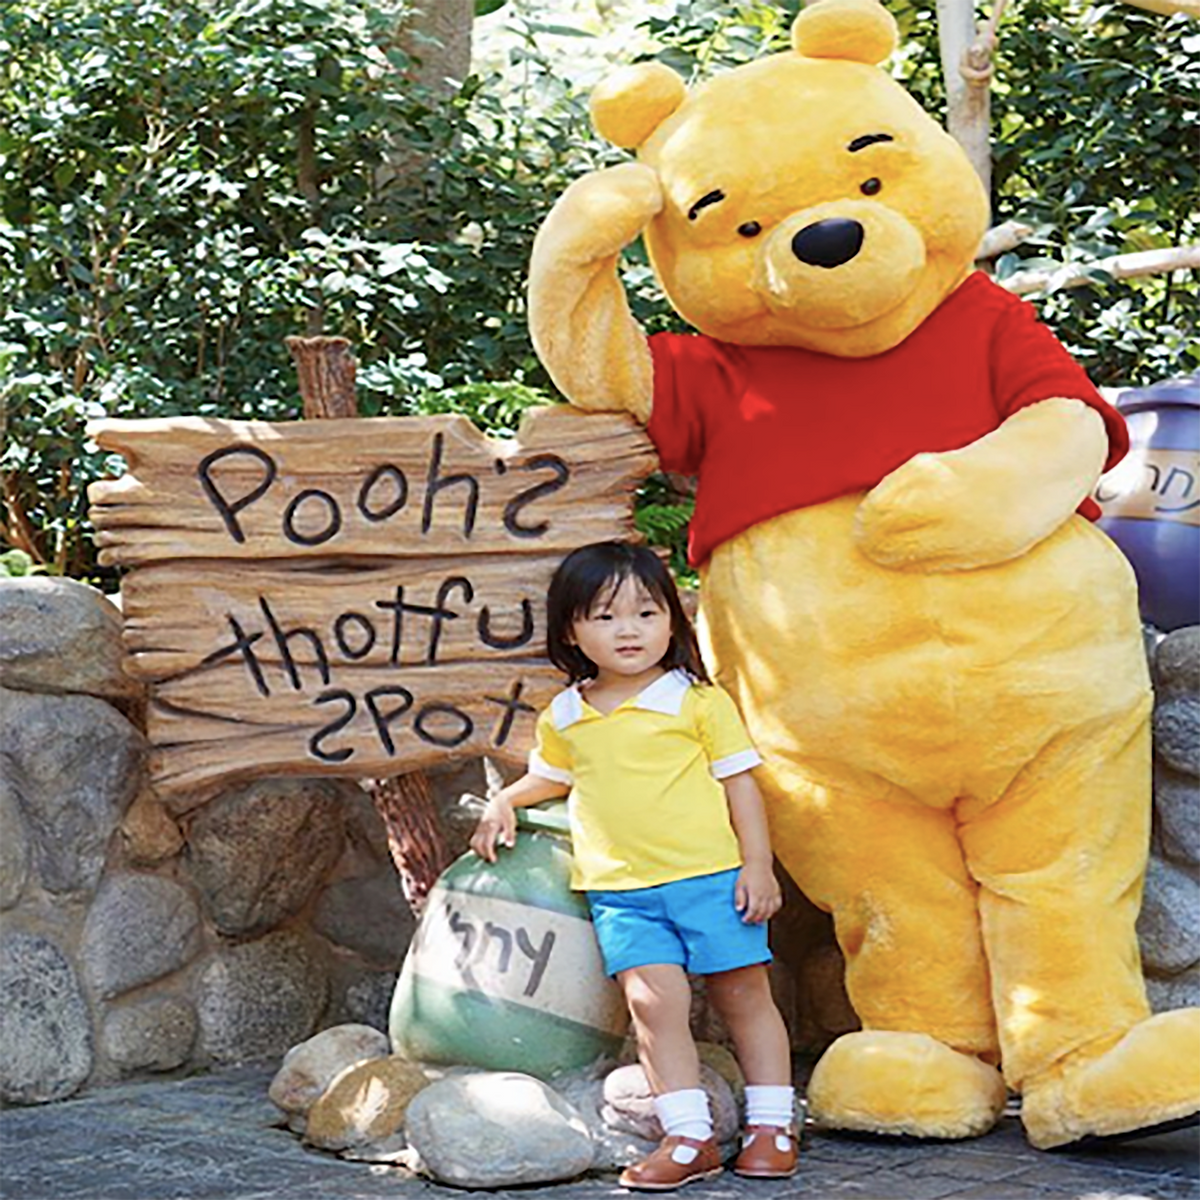 christopher-robin copy.png